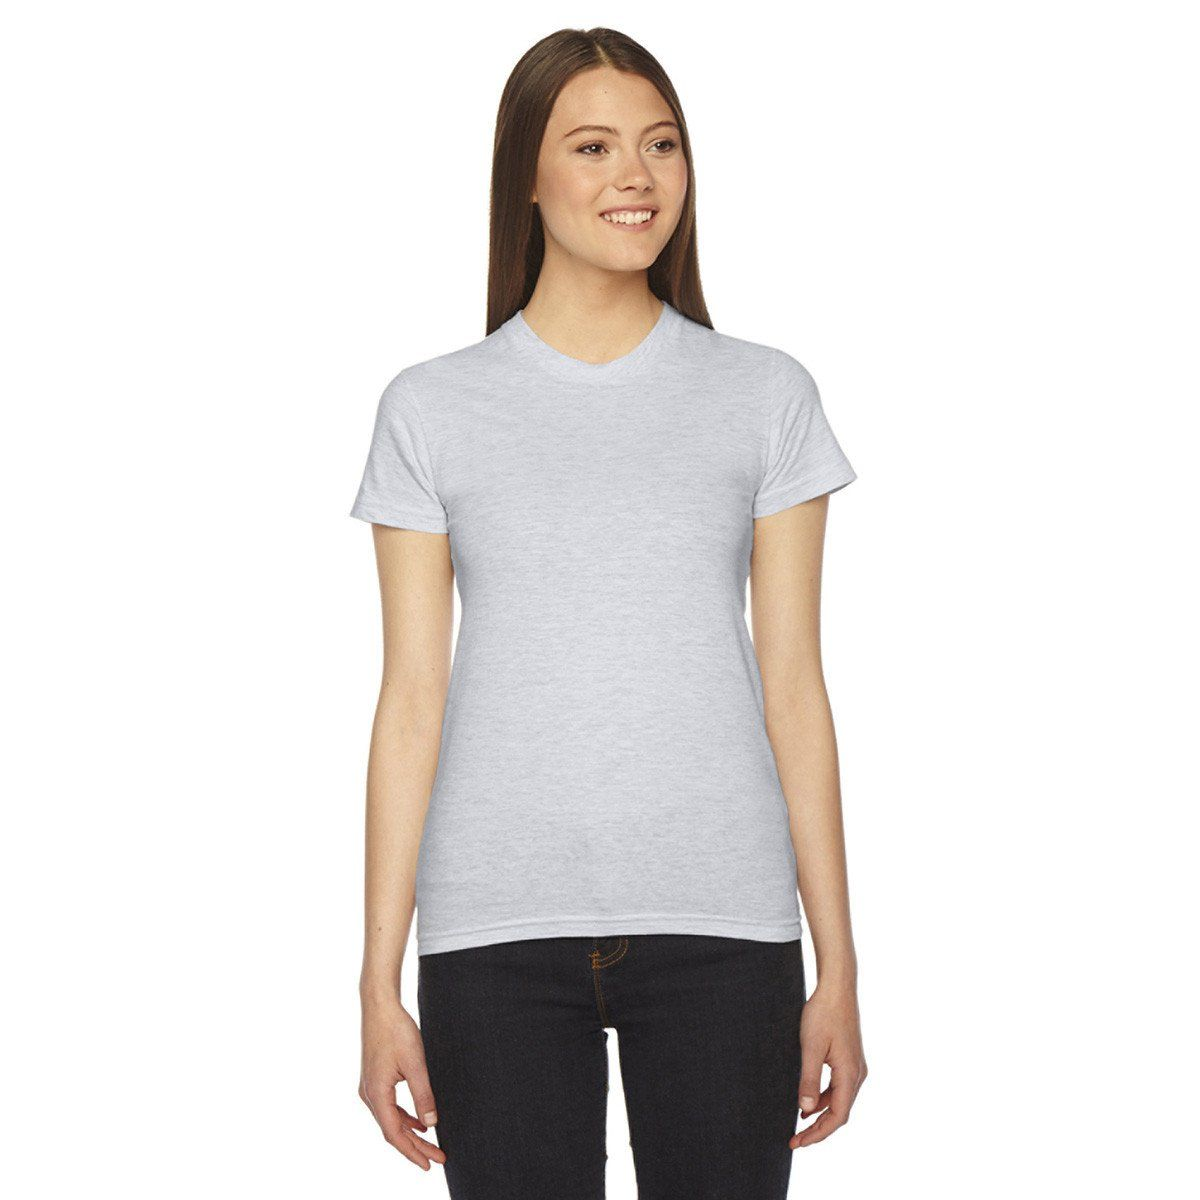 991c94c6f5 American Apparel Women's Ash Grey Fine Jersey Short-Sleeve T-Shirt ...